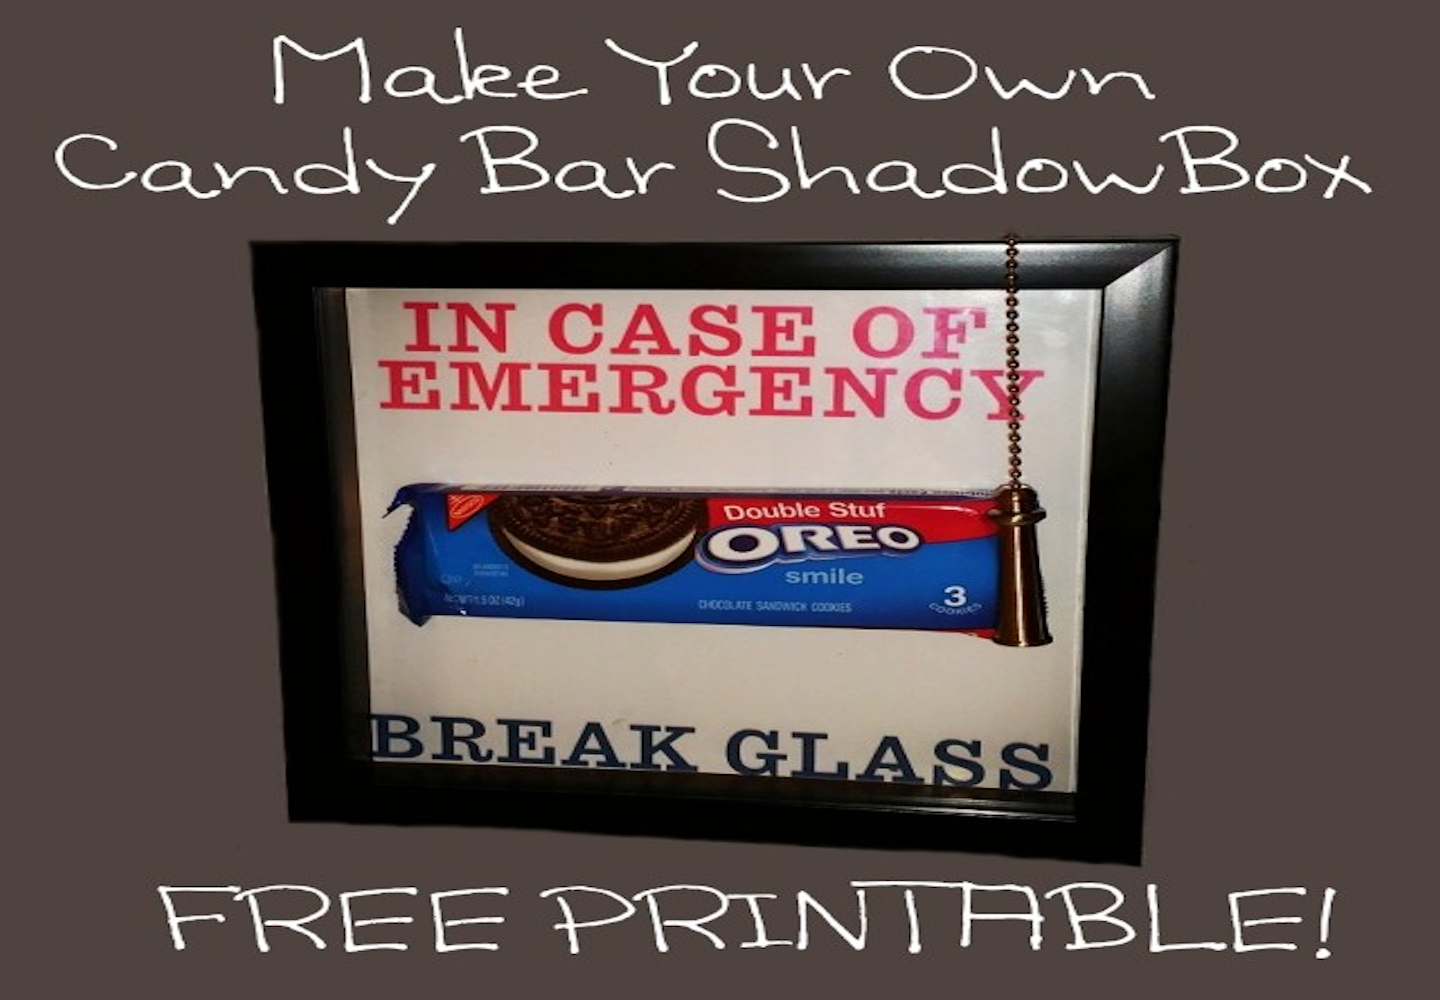 Make Your Own Candy Bar Shadow Box Free Printable